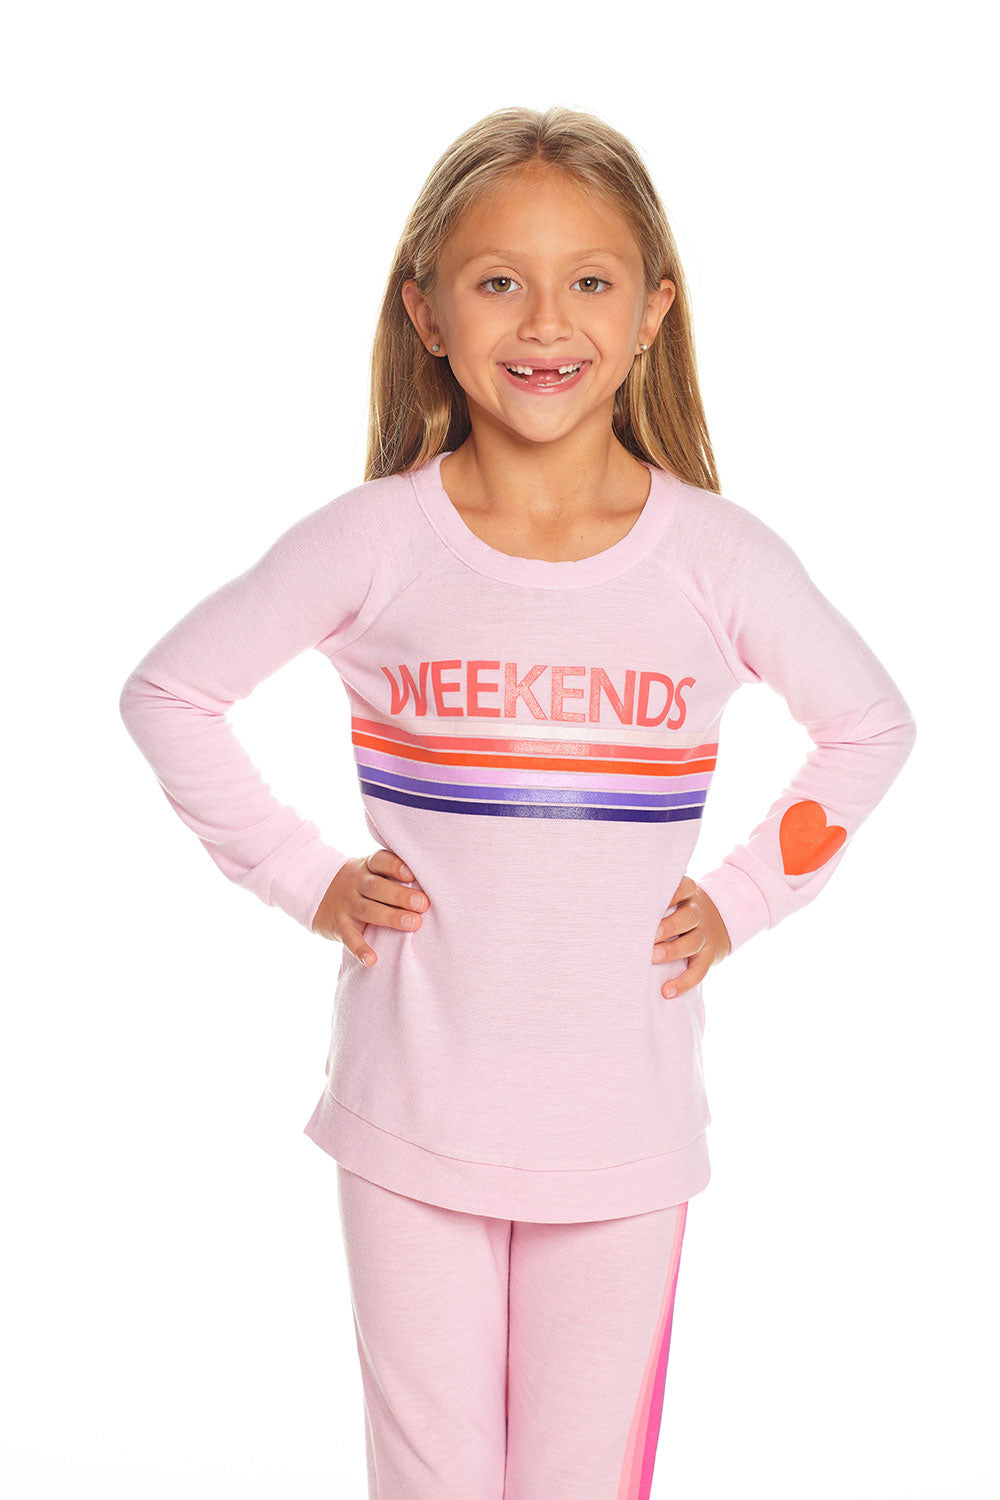 Weekends, GIRLS, chaserbrand.com,chaser clothing,chaser apparel,chaser los angeles